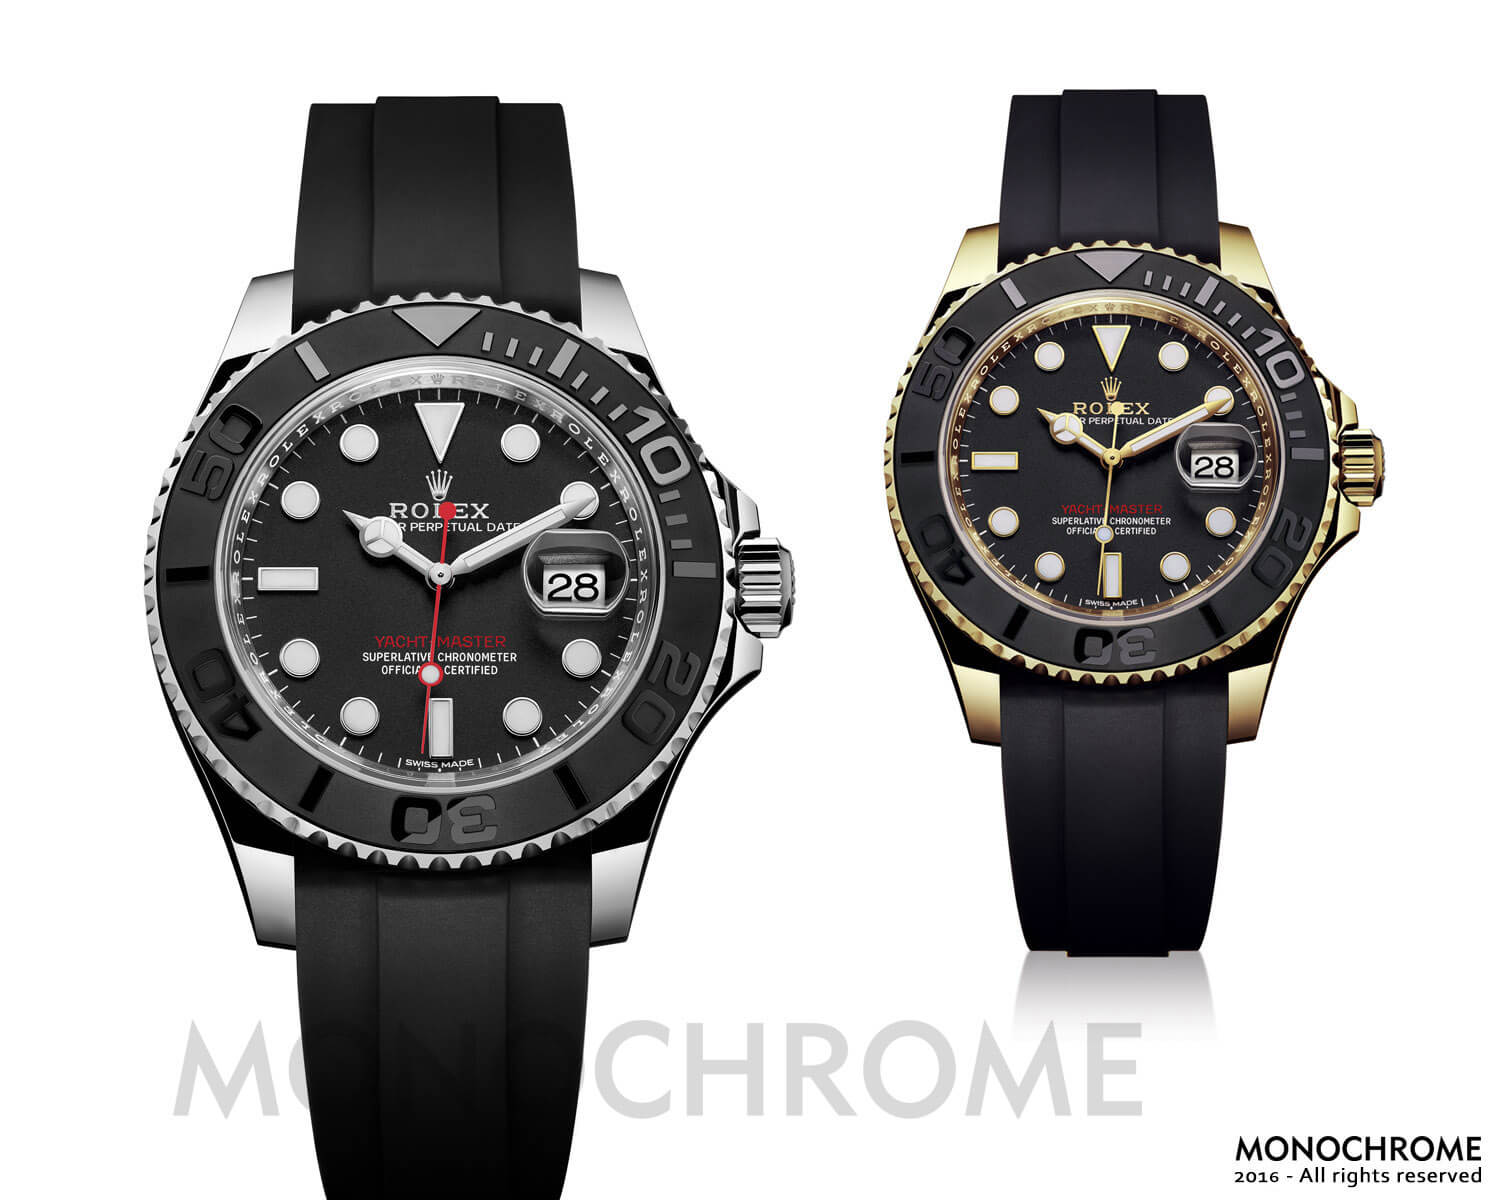 Rolex-Yacht-Master-40-ceramic-rubber-new-collection-Rolex-Baselworld-2016-Rolex-Predictions-2016-Monochrome